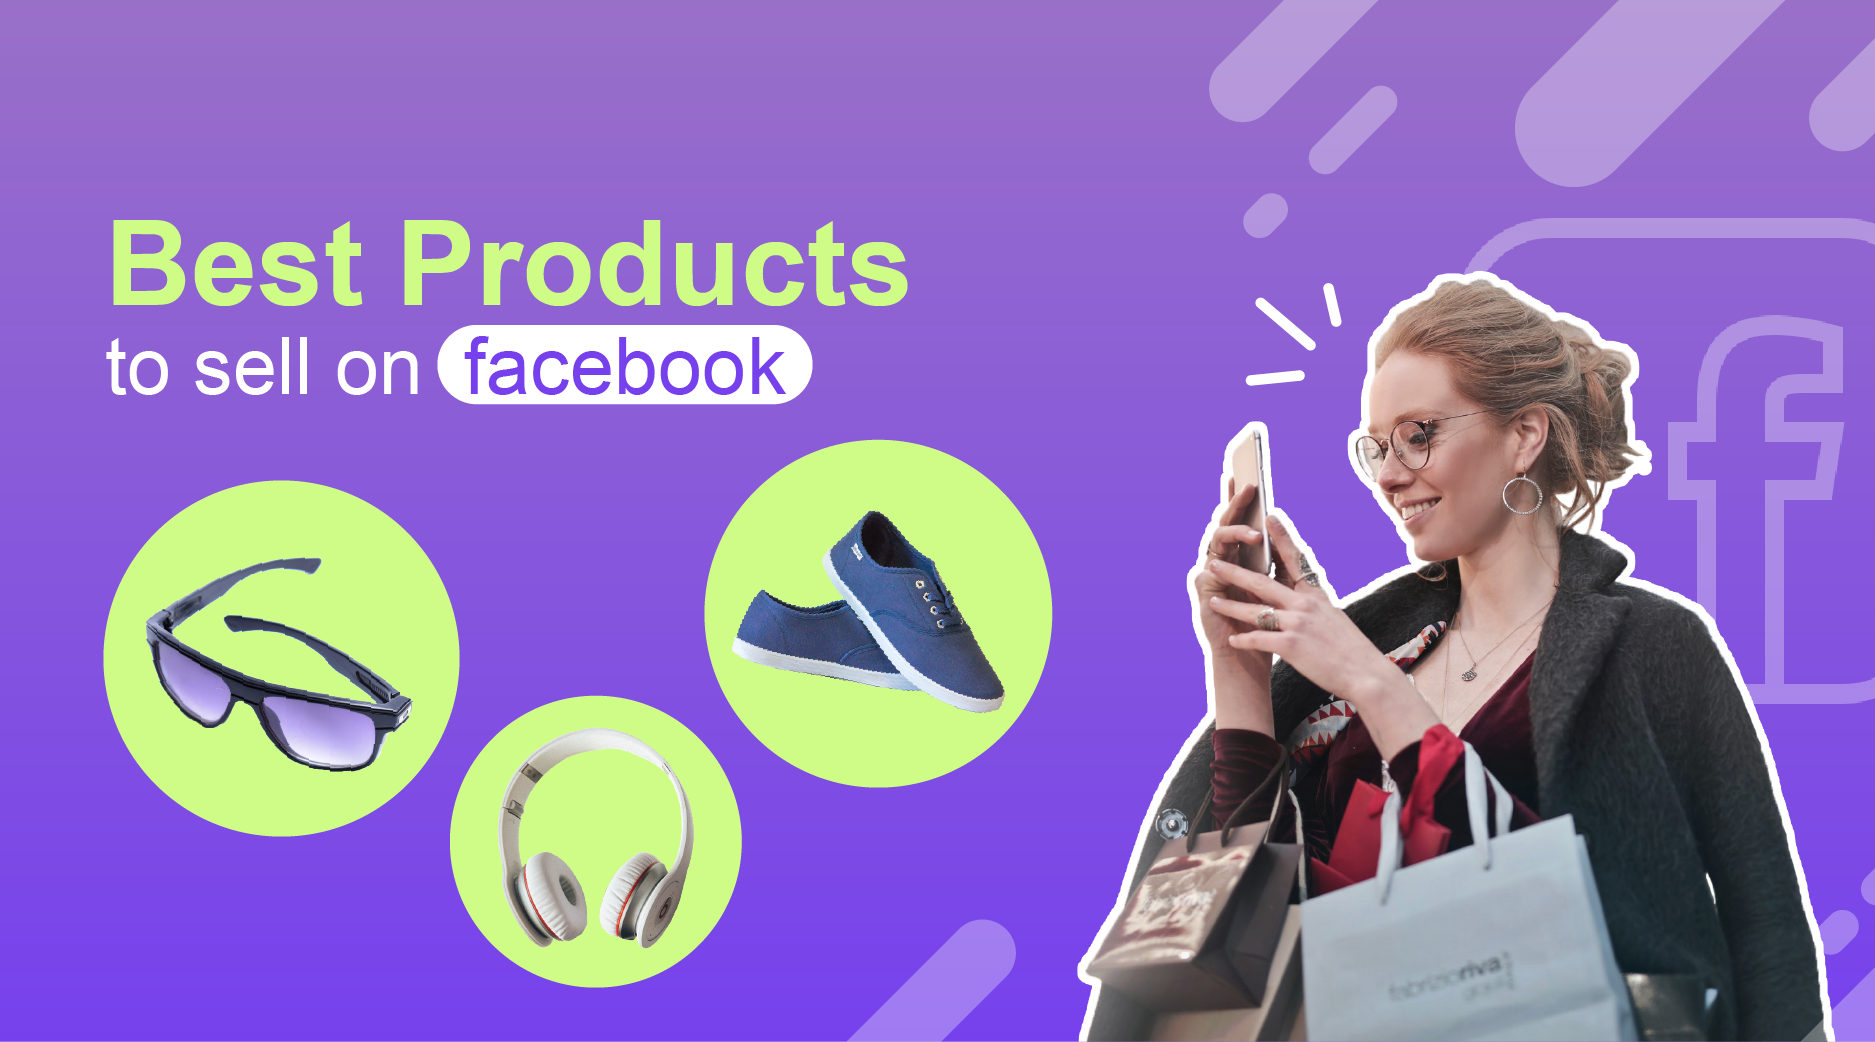 How to Find the Best Products to Sell on Facebook